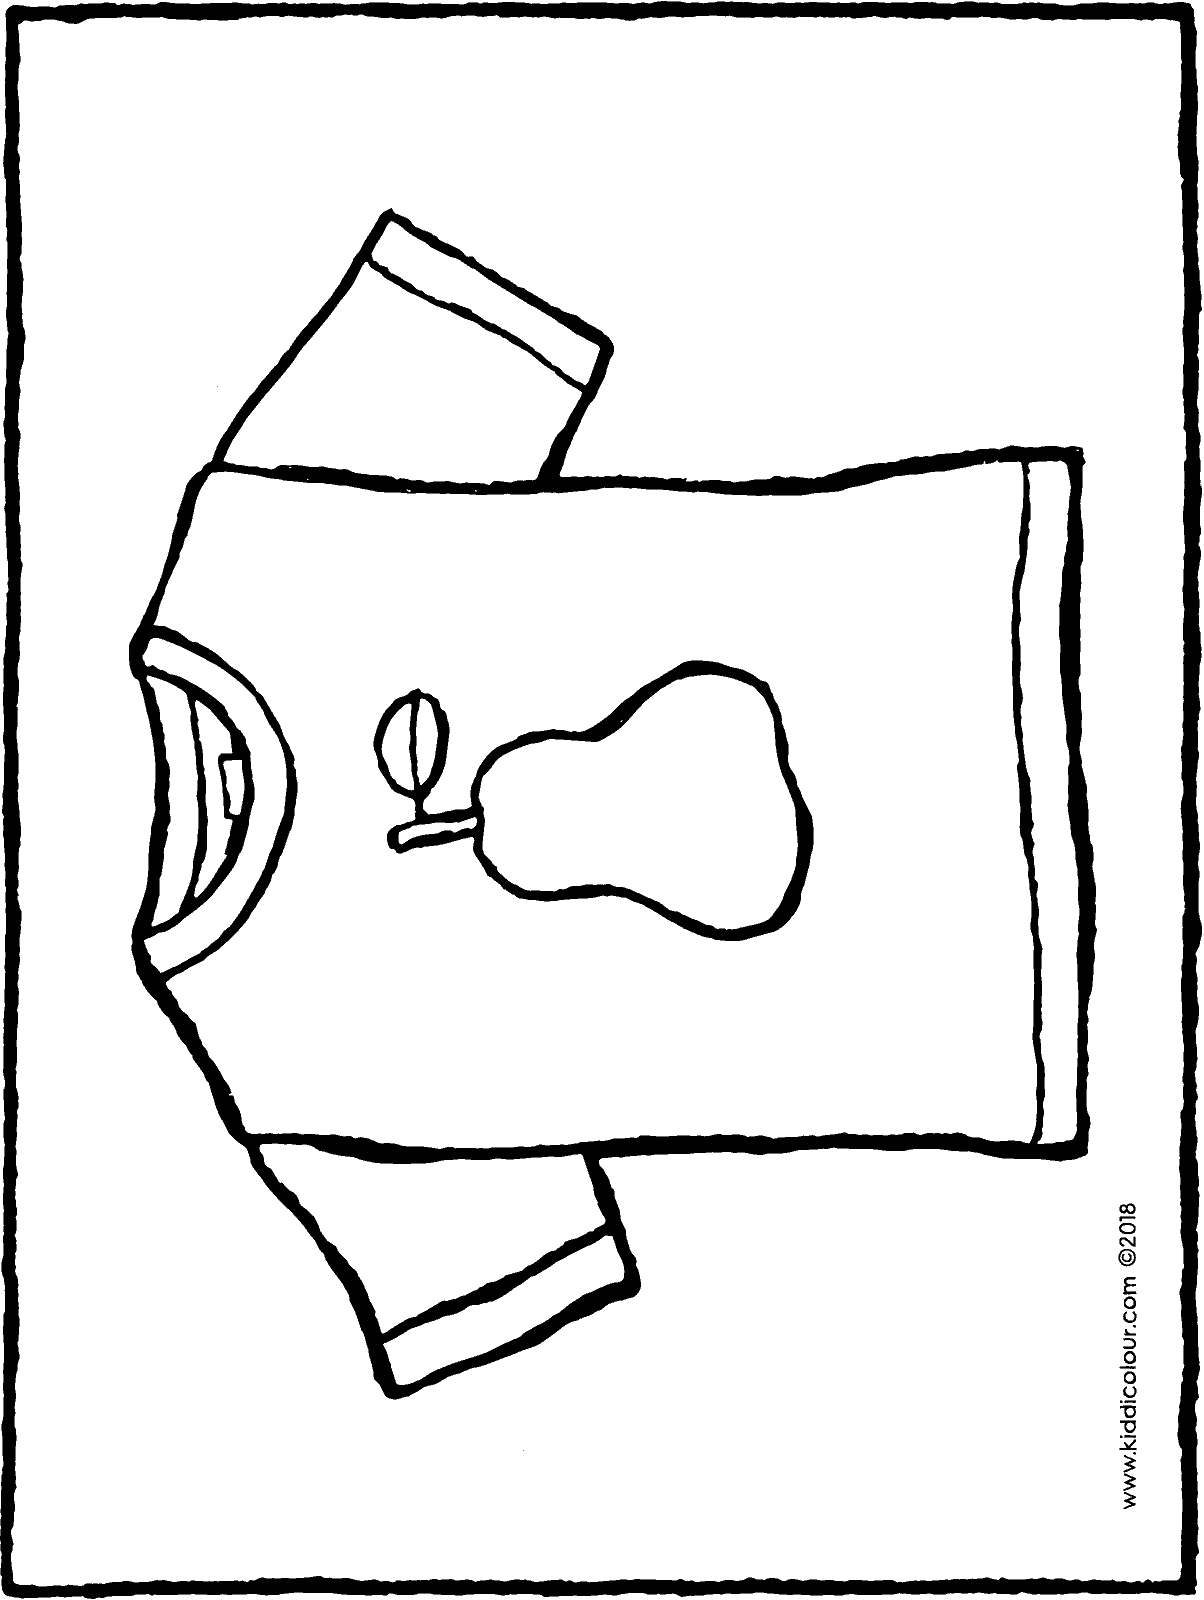 T-shirt colouring page drawing picture 01H